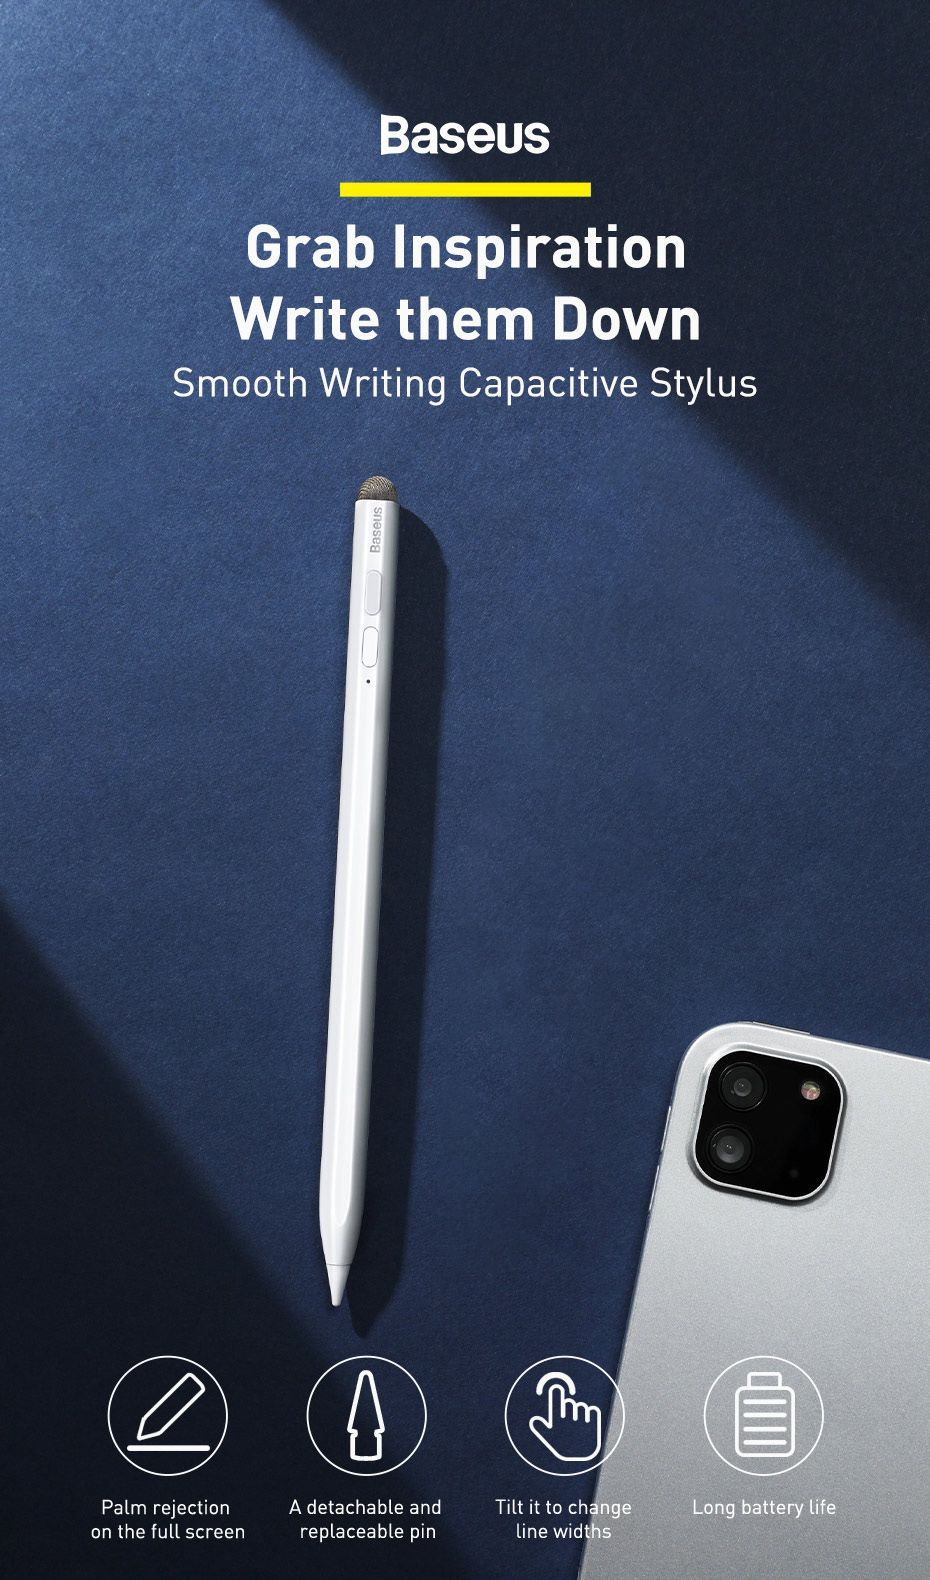 Baseus Smooth Writing Stylus Pen Active Passive Version With Type C Charging Capacitive (1)